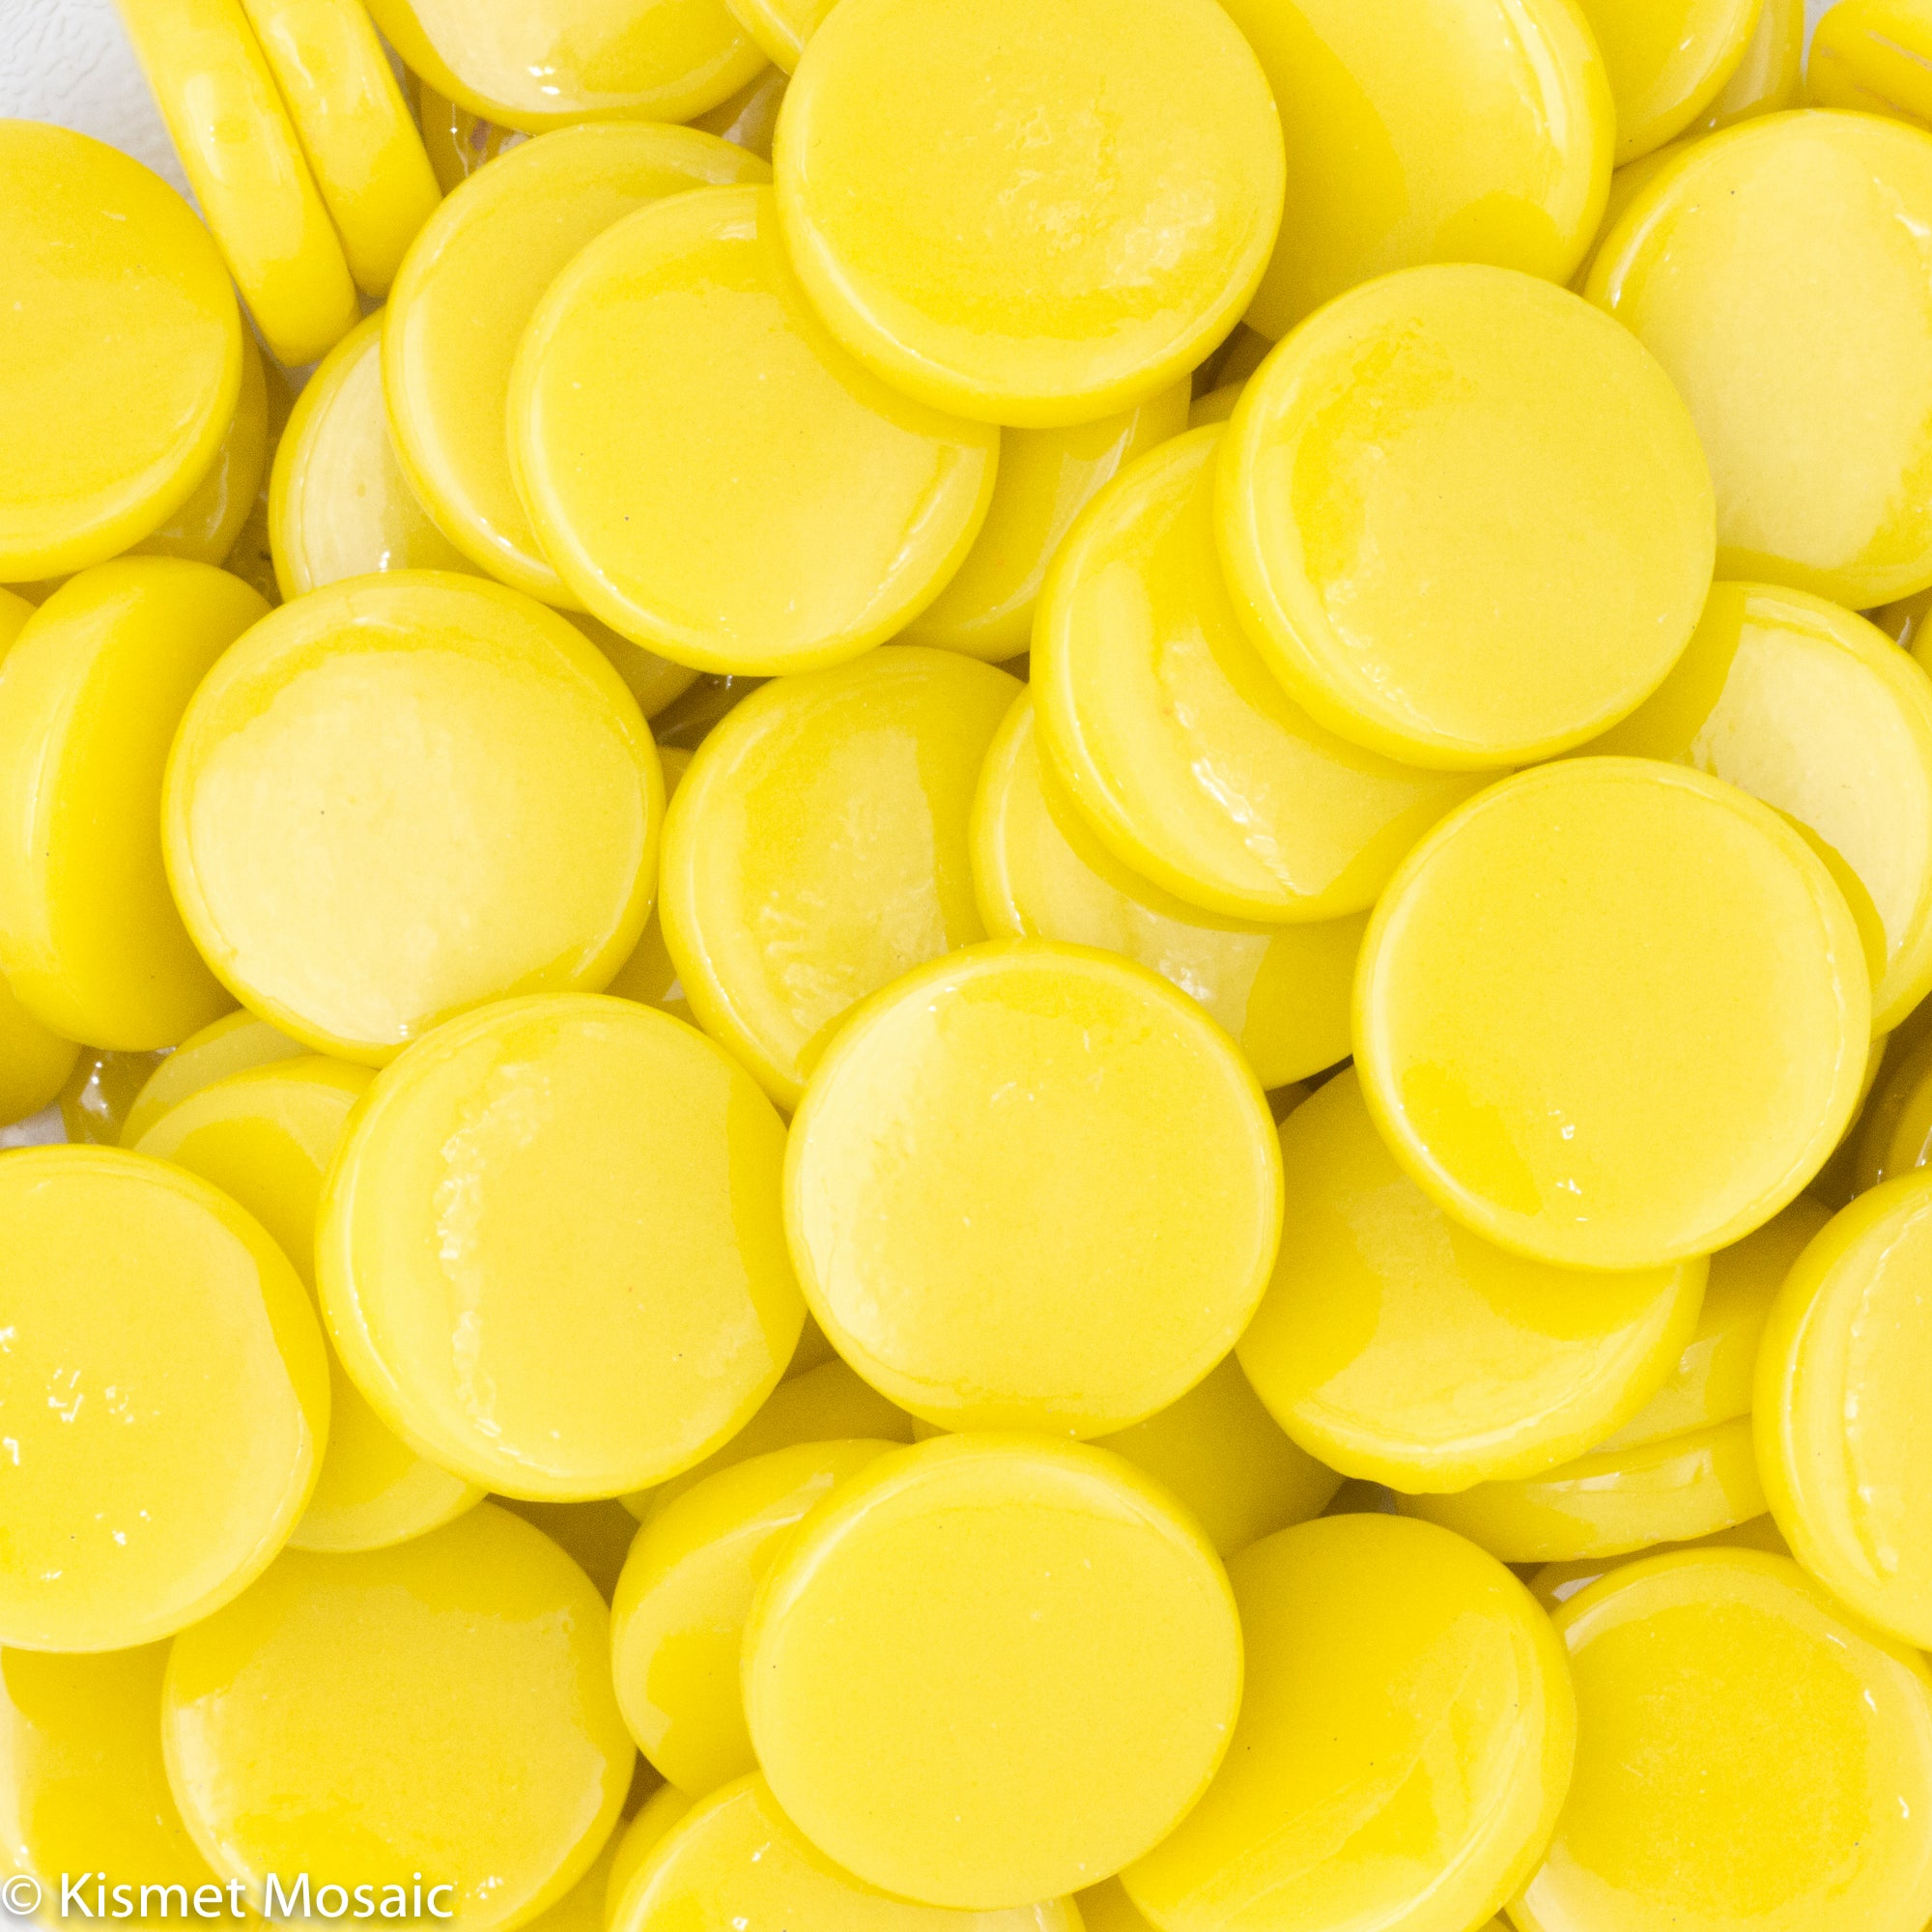 pr30g - Sweet Corn - Gloss